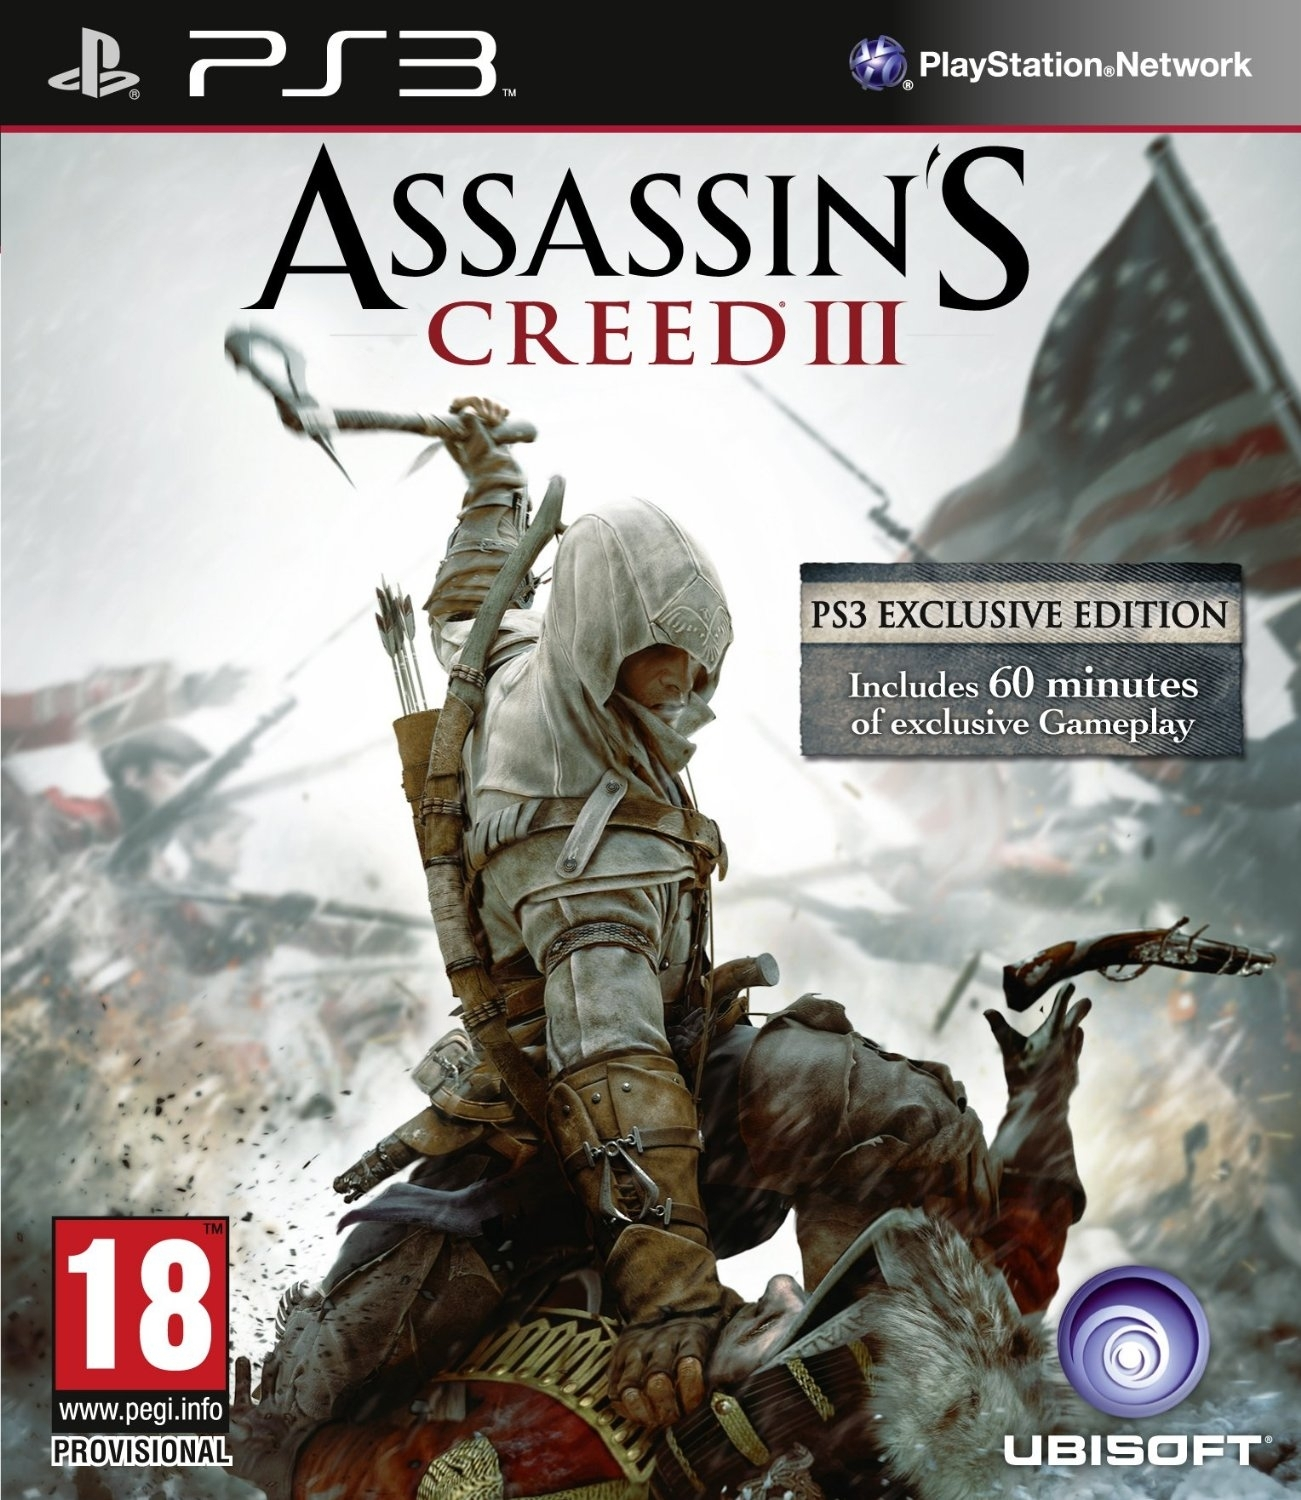 Assassin's Creed III / Assassins Creed III (PS3)